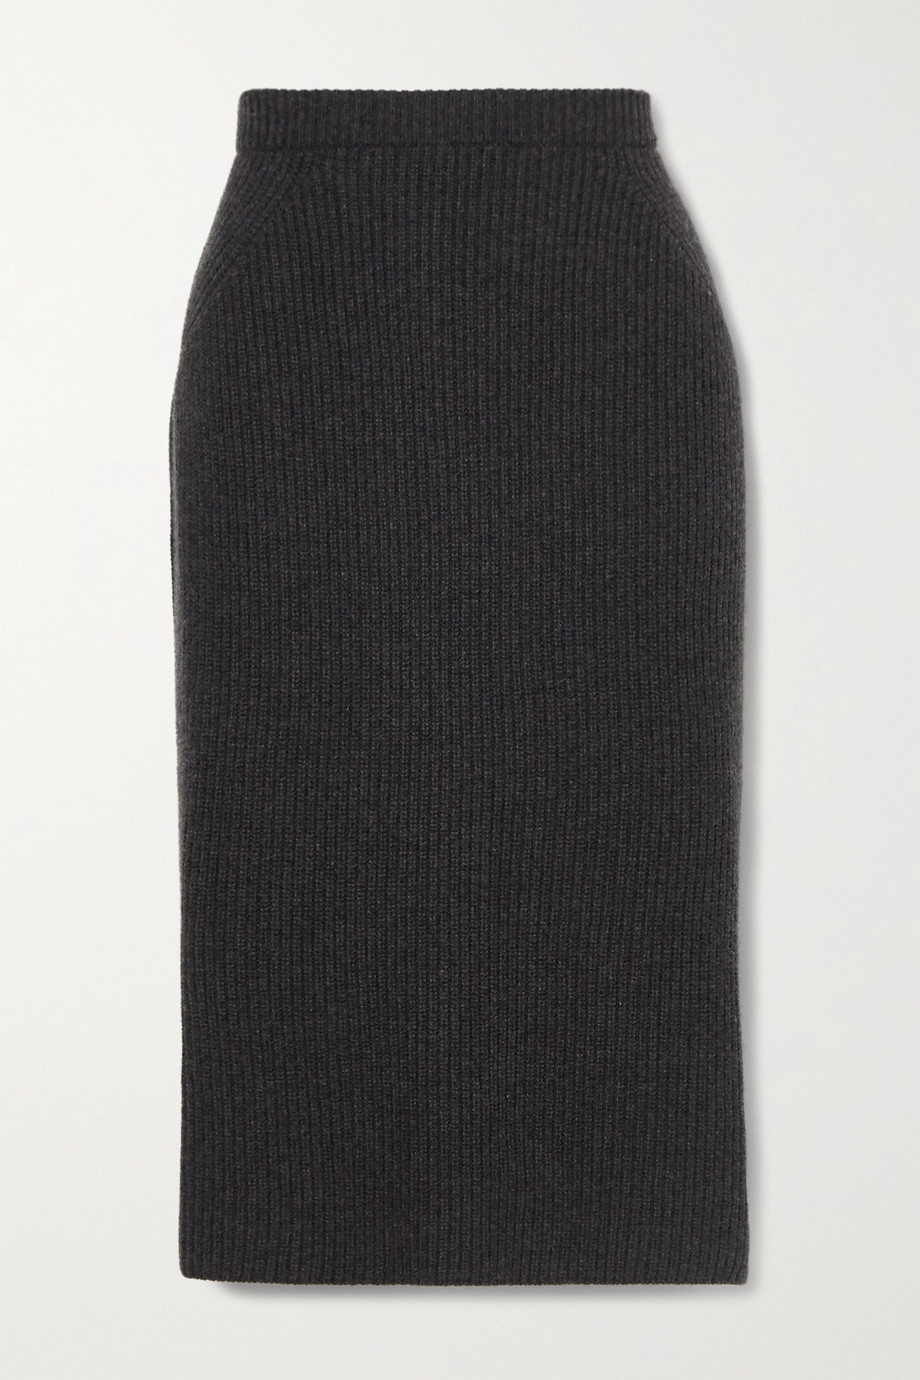 Loro Piana Ribbed cashmere midi skirt